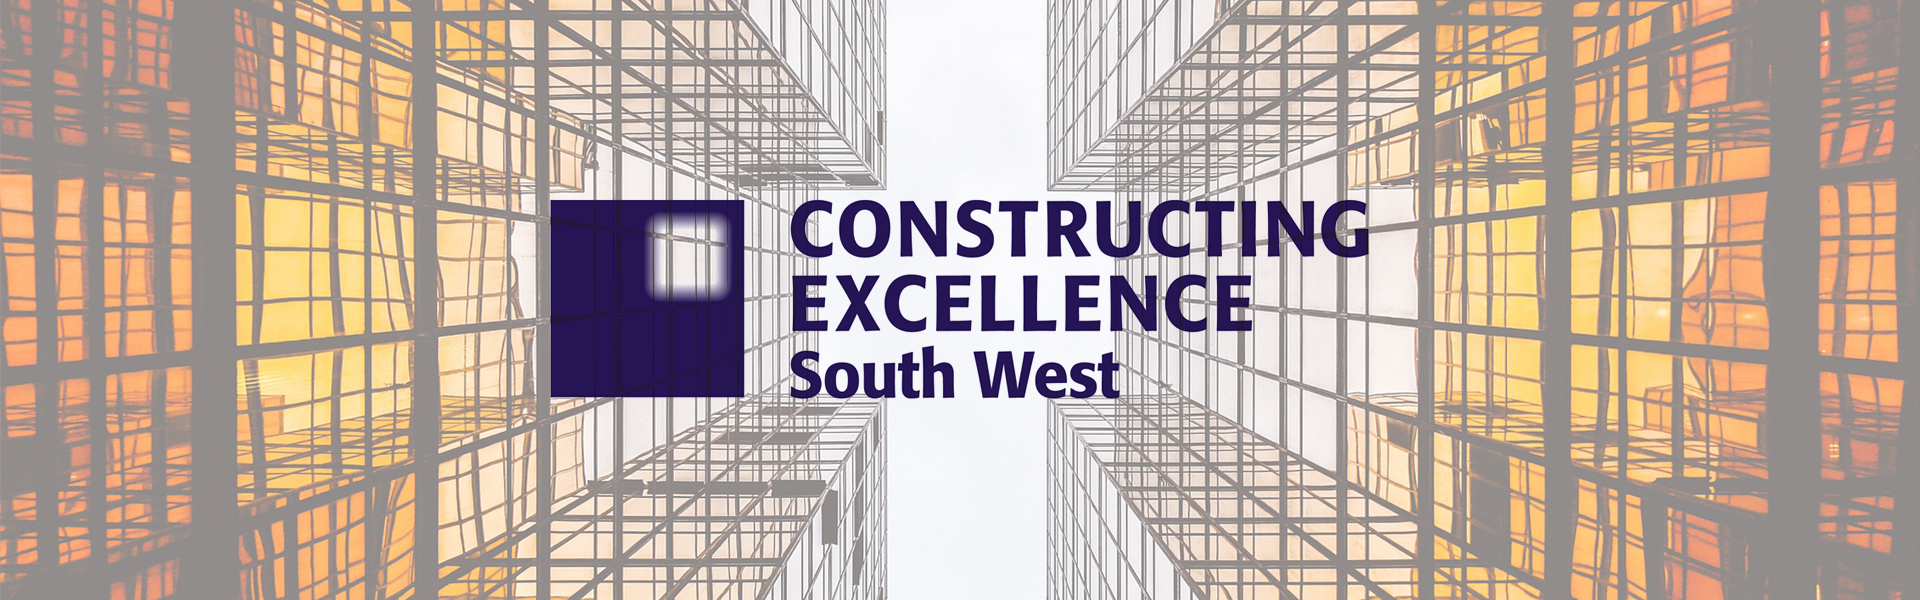 Shortlisted for the South West Build Environment Awards!